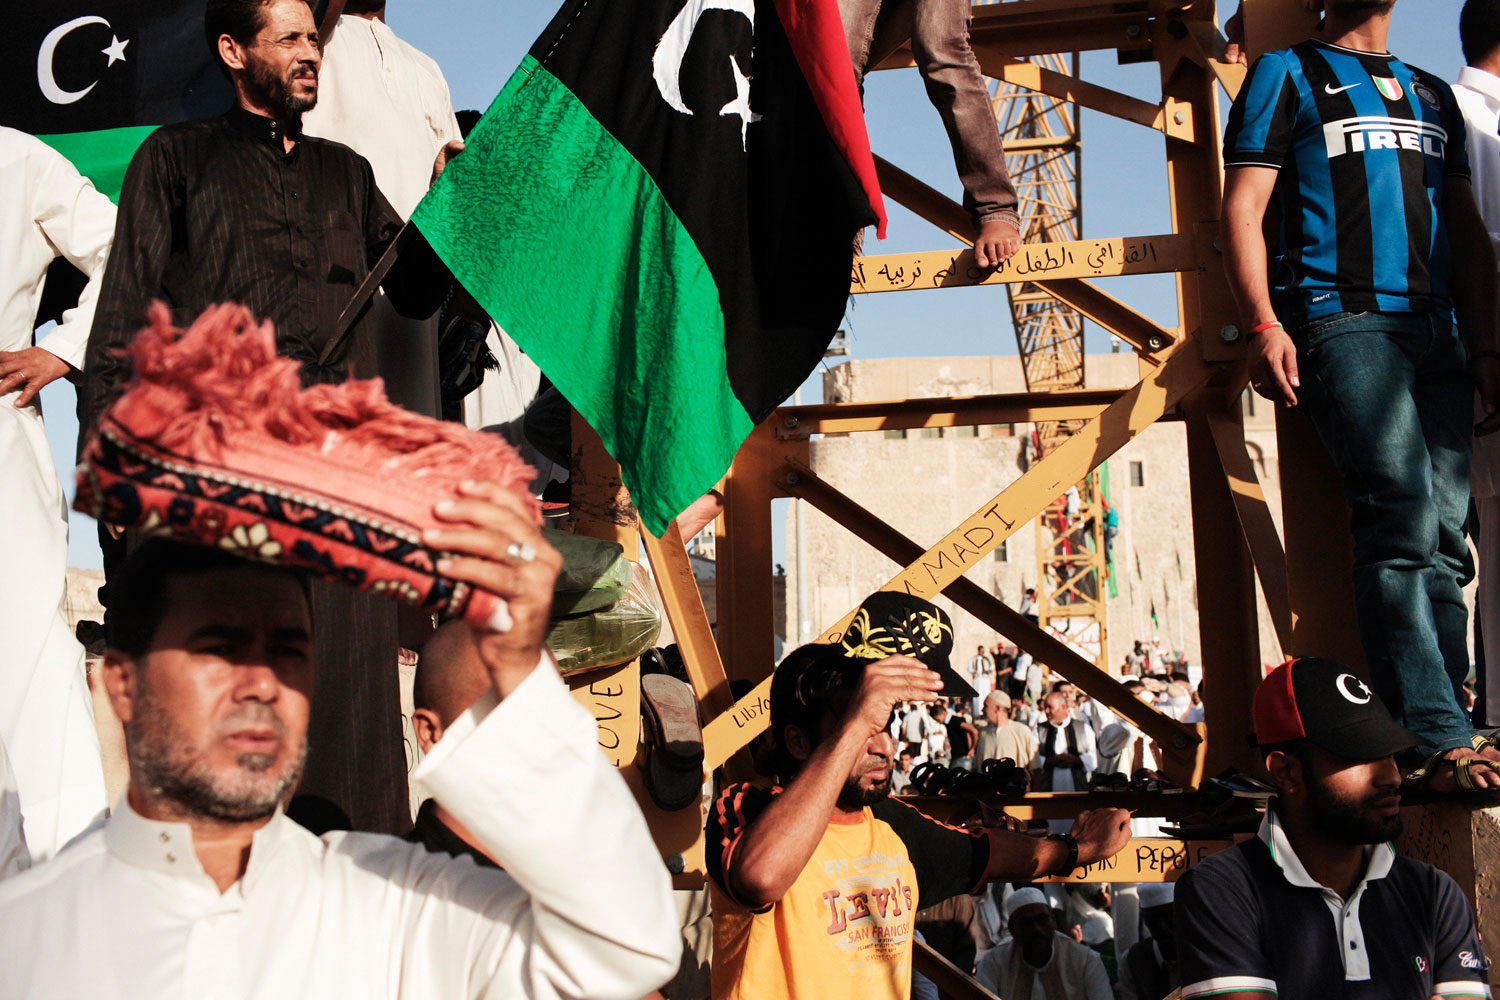 Aug. 31, 2011. Libyans gather for an Eid Al-Fitr holiday celebration in Tripoli's Martyrs' Square, formerly known as Green Square, in Libya.